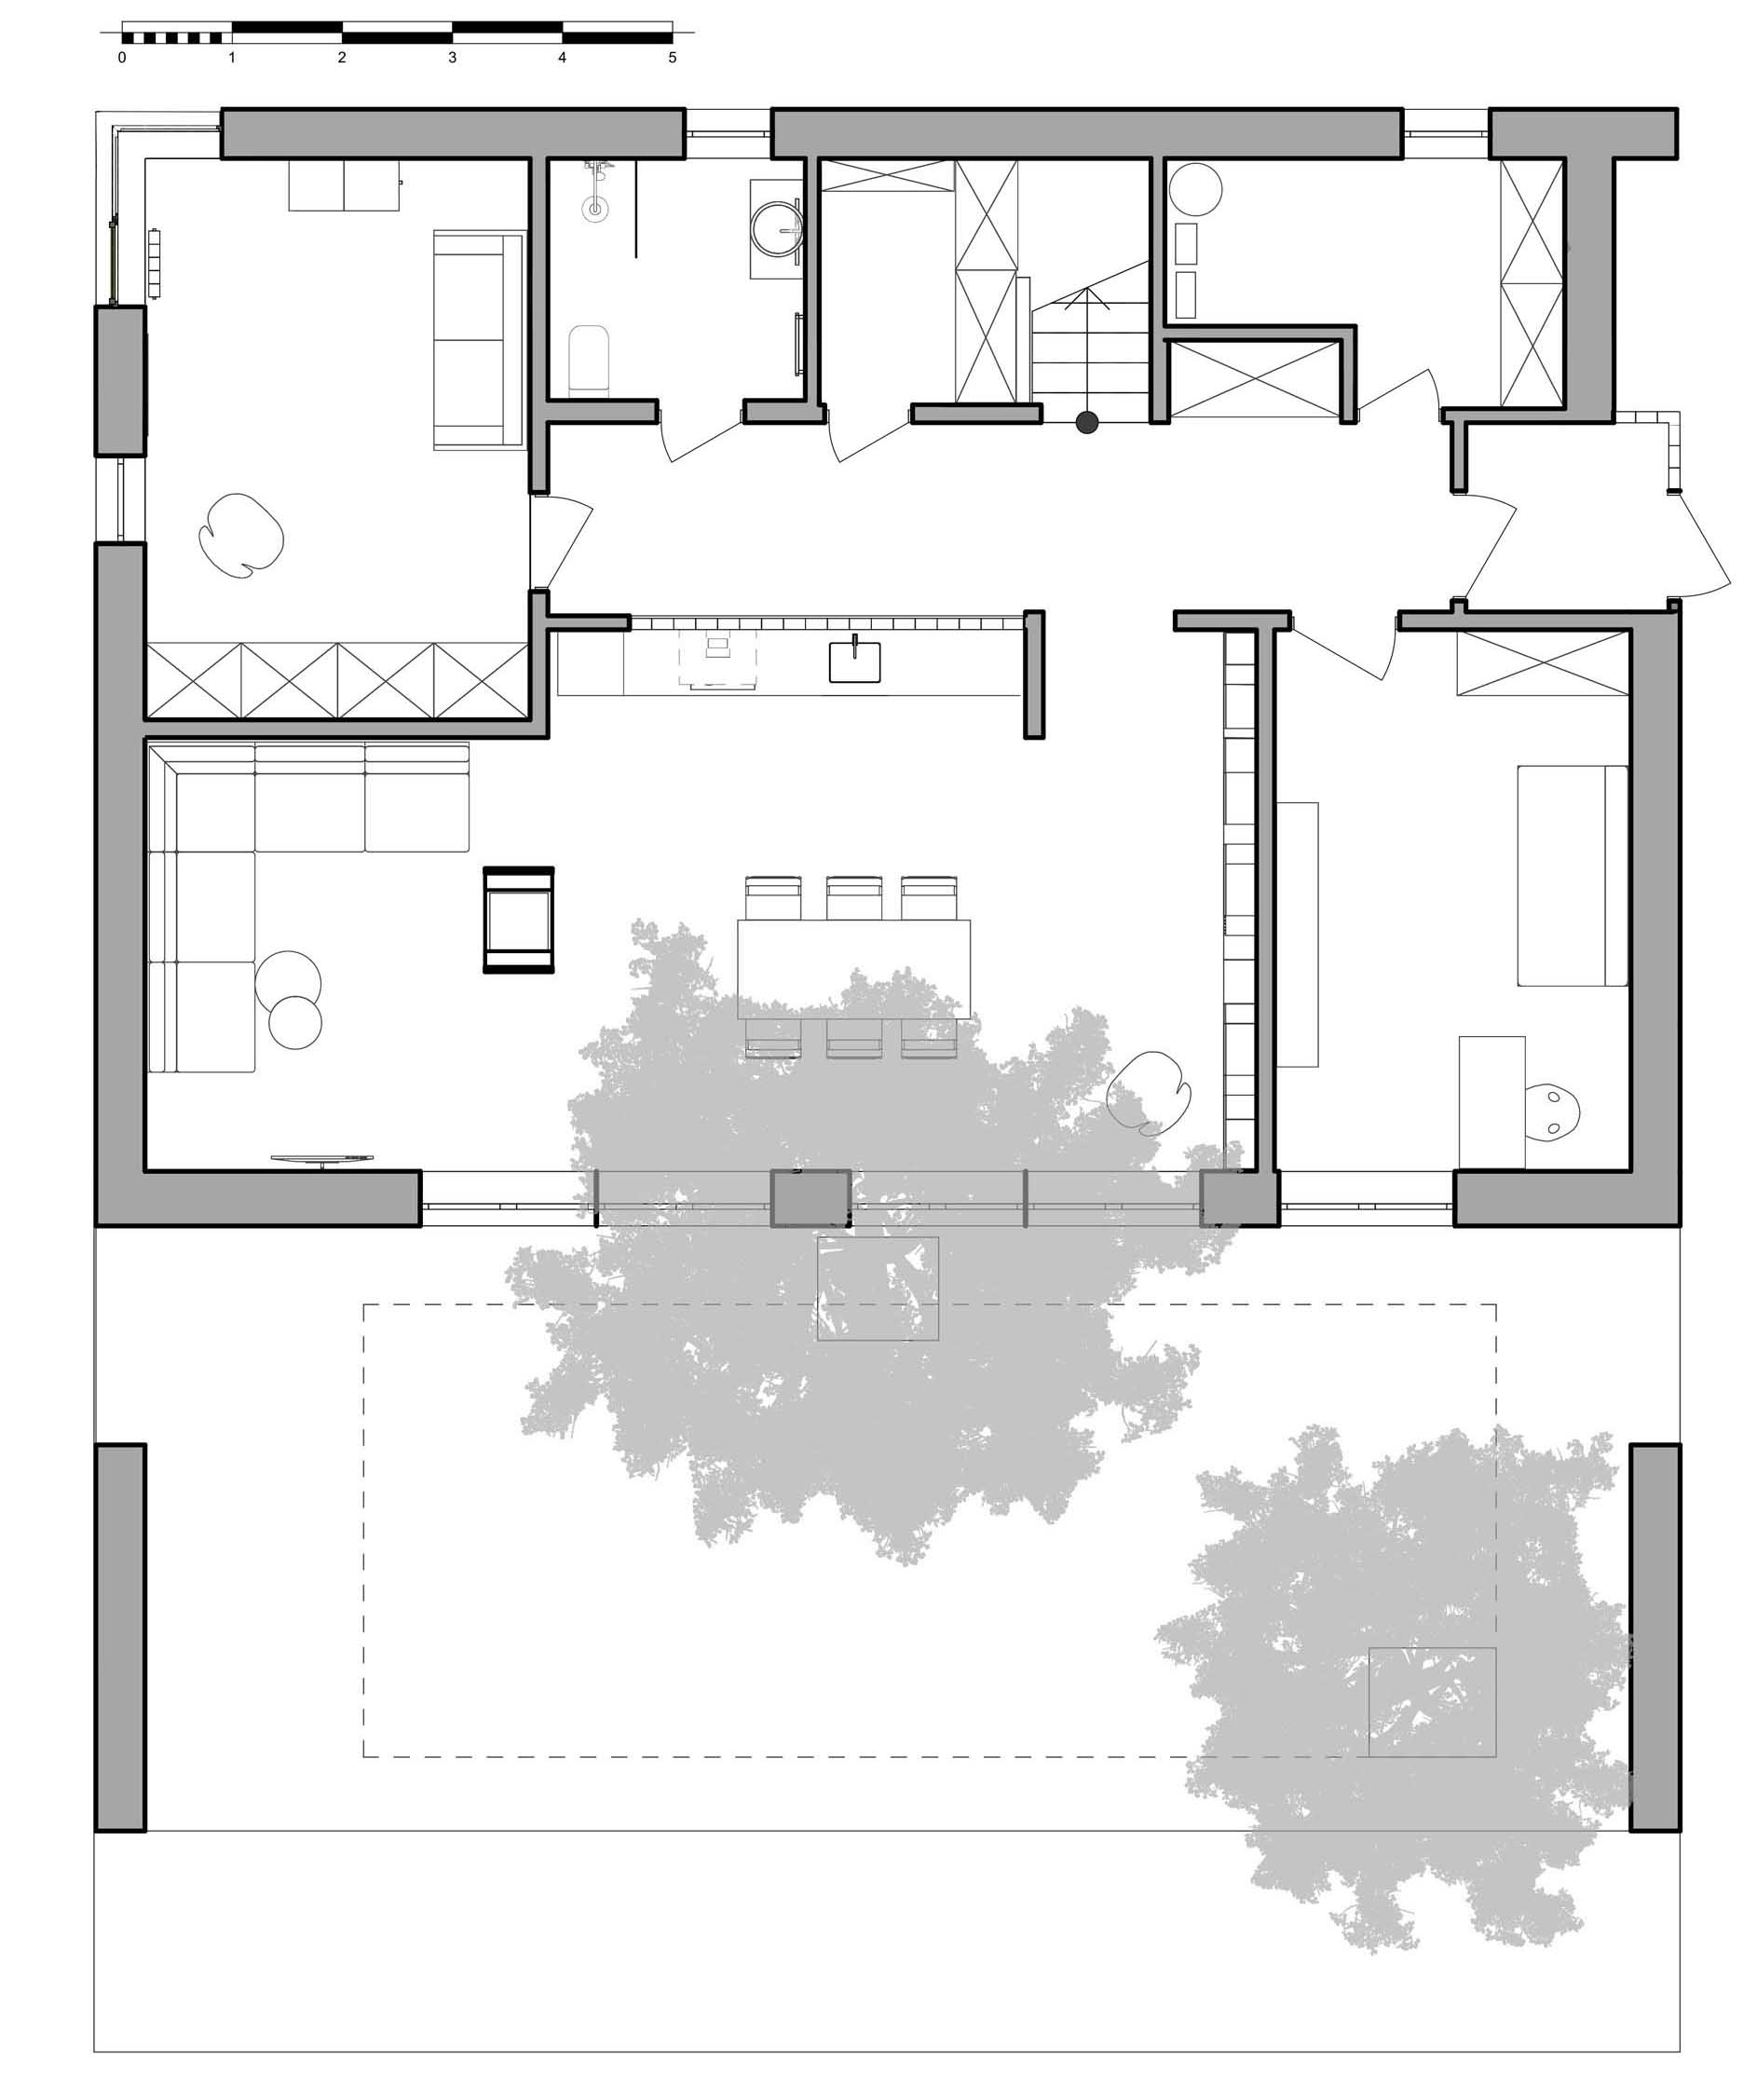 The floor plan of a modern house with a sloped green roof.